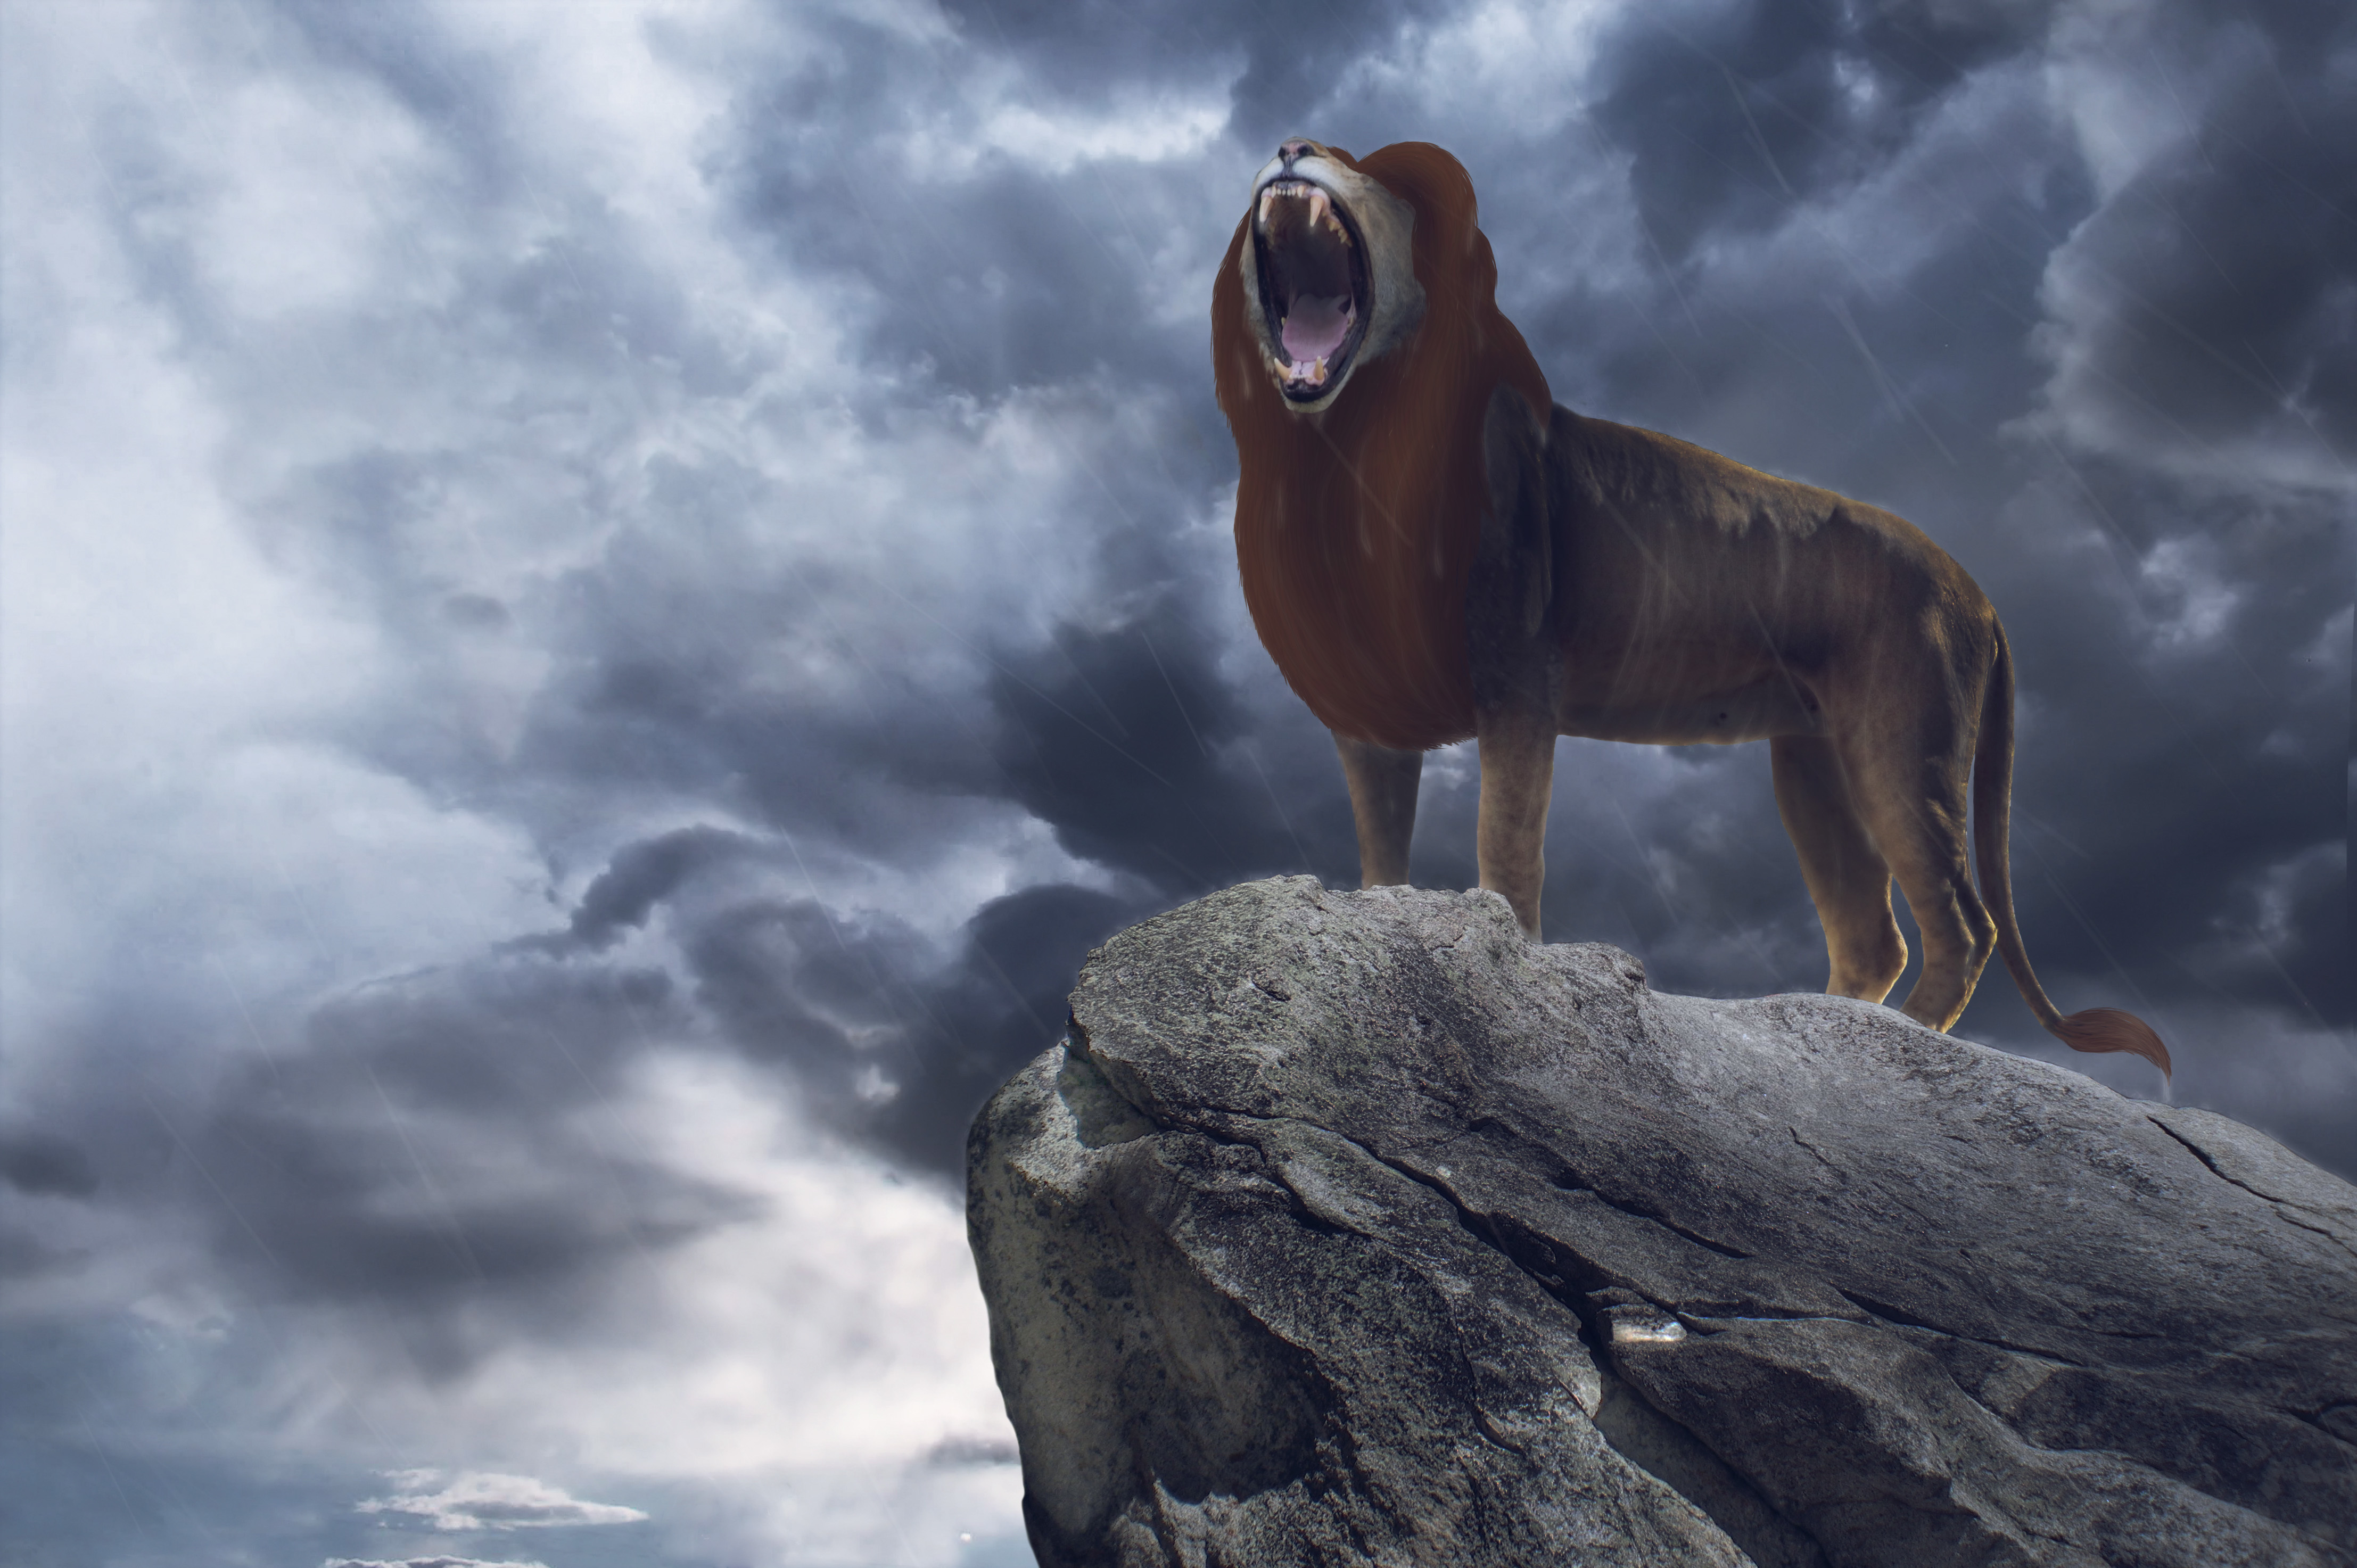 Simba In The Lion King 2019 Movie Wallpaper Hd Movies 4k